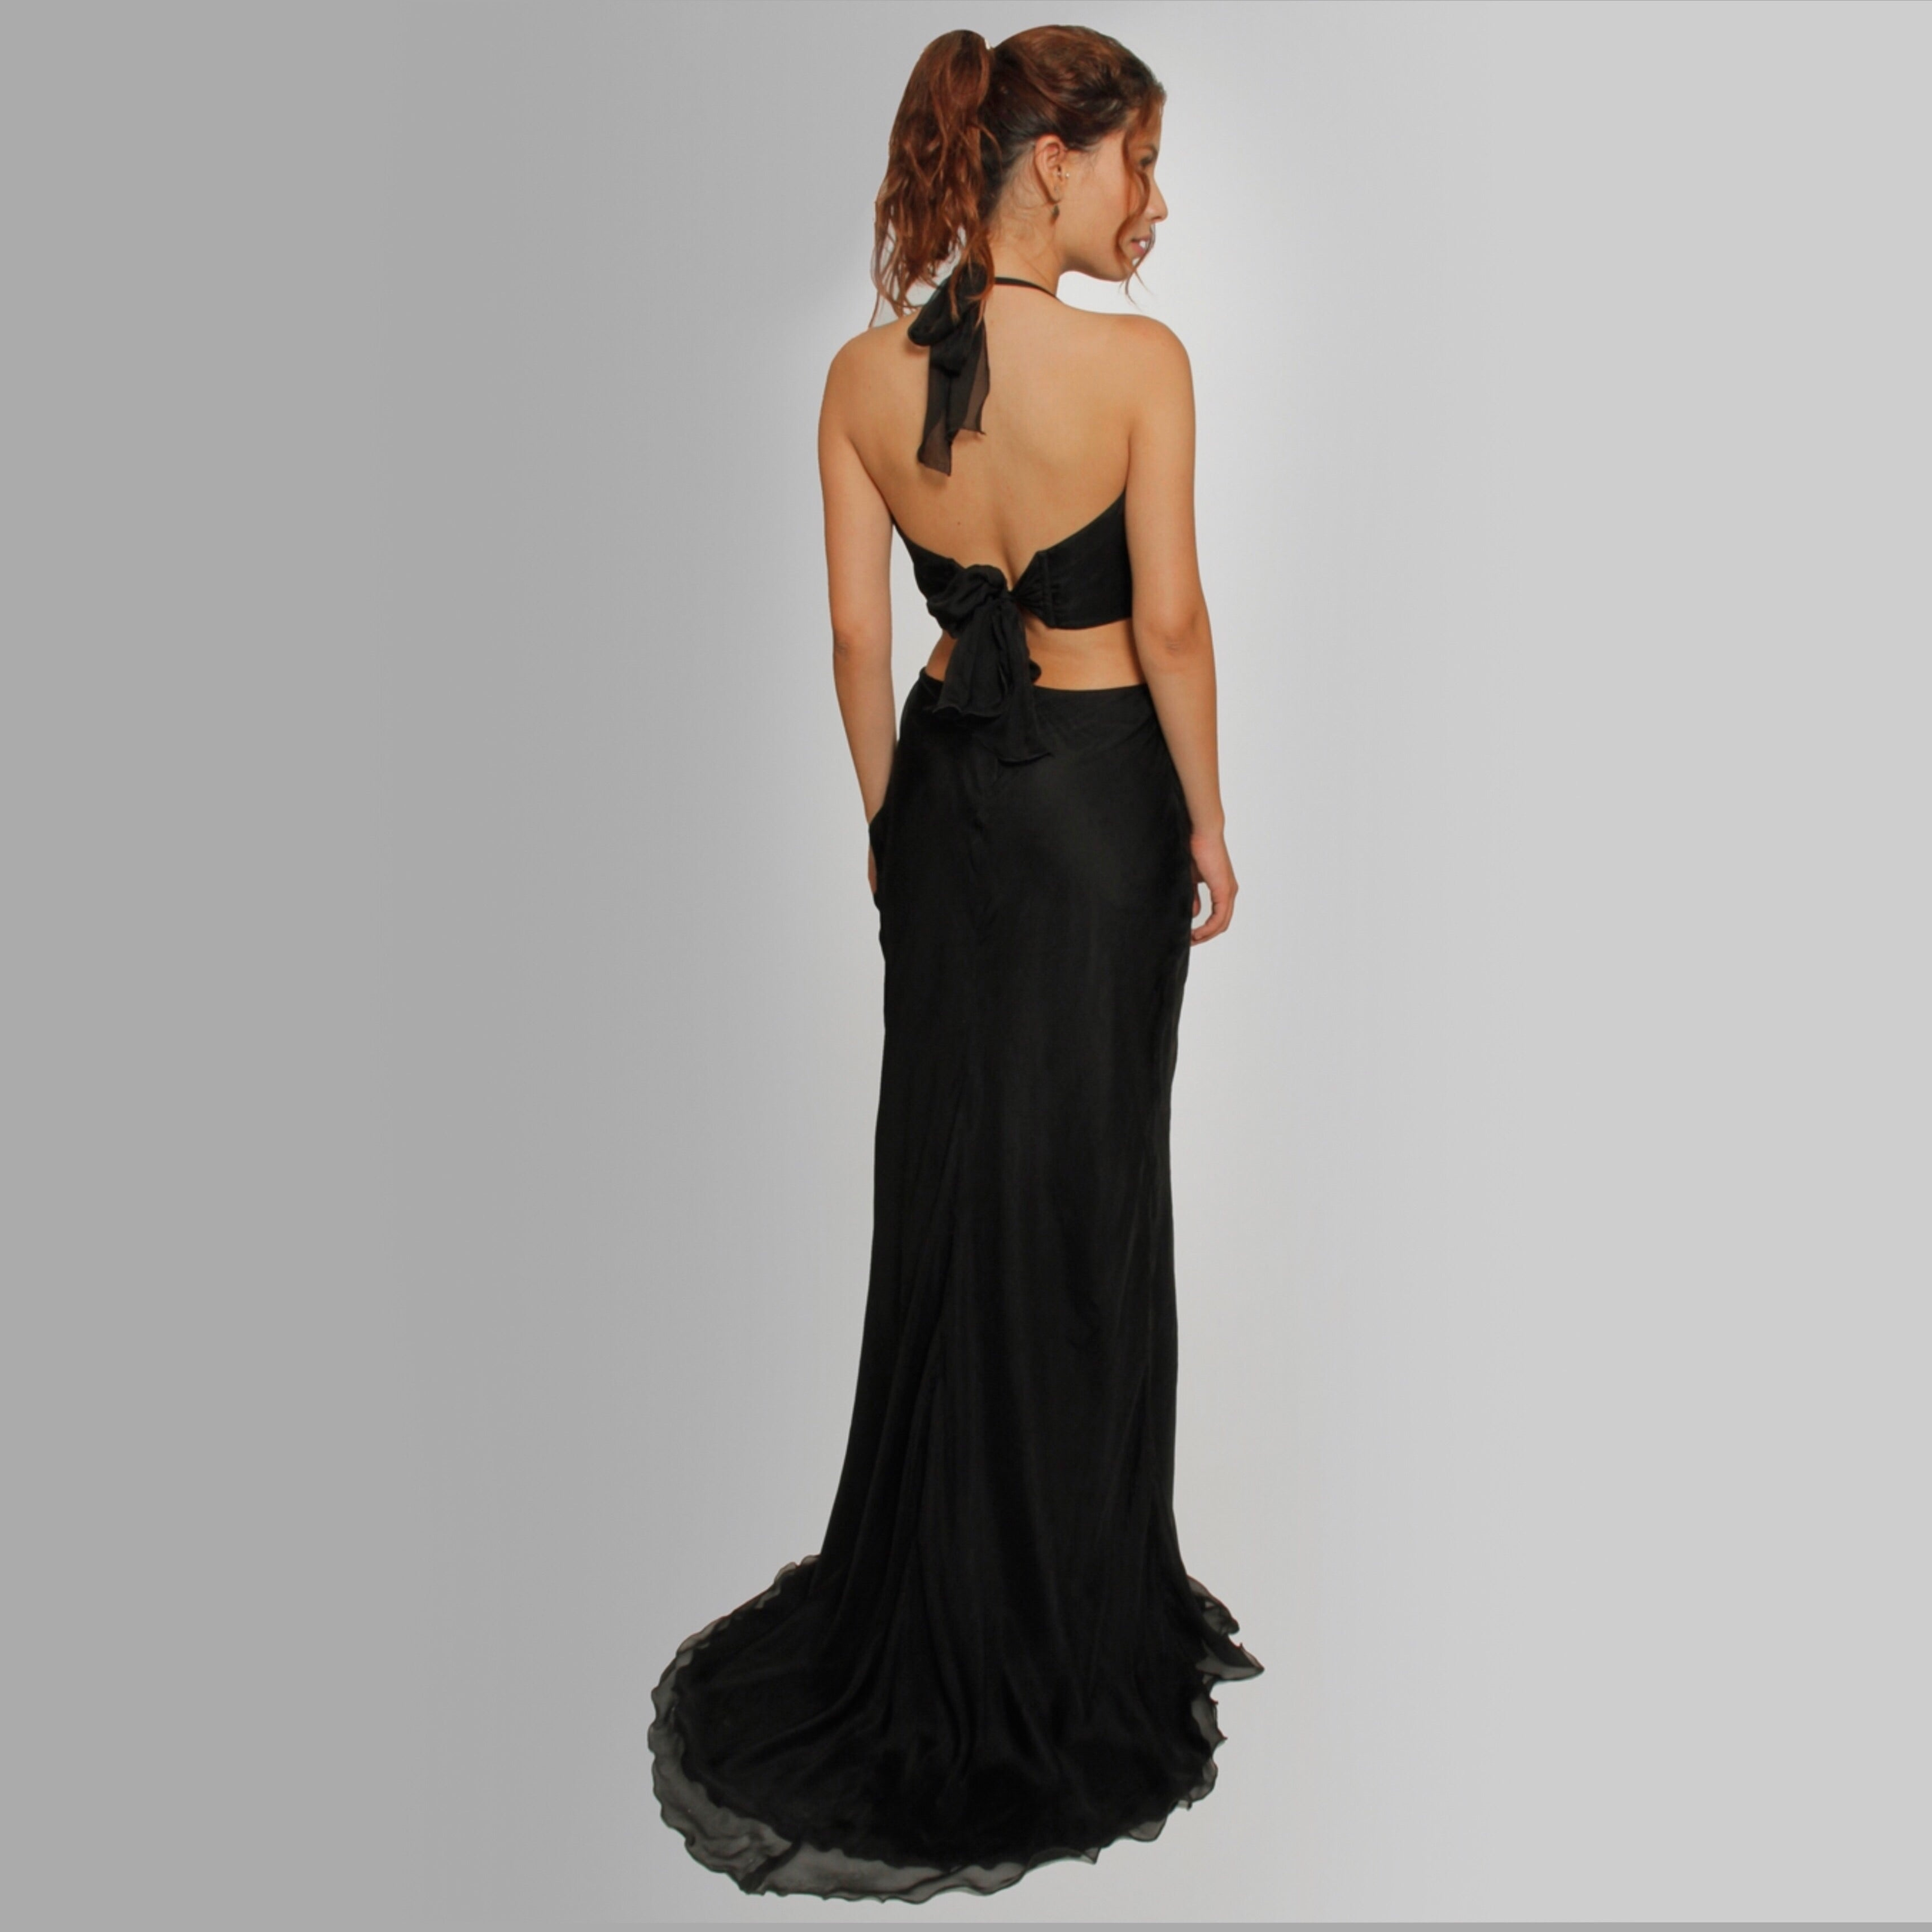 Cut-off Crystal Ring gown - Claudio Milano Couture